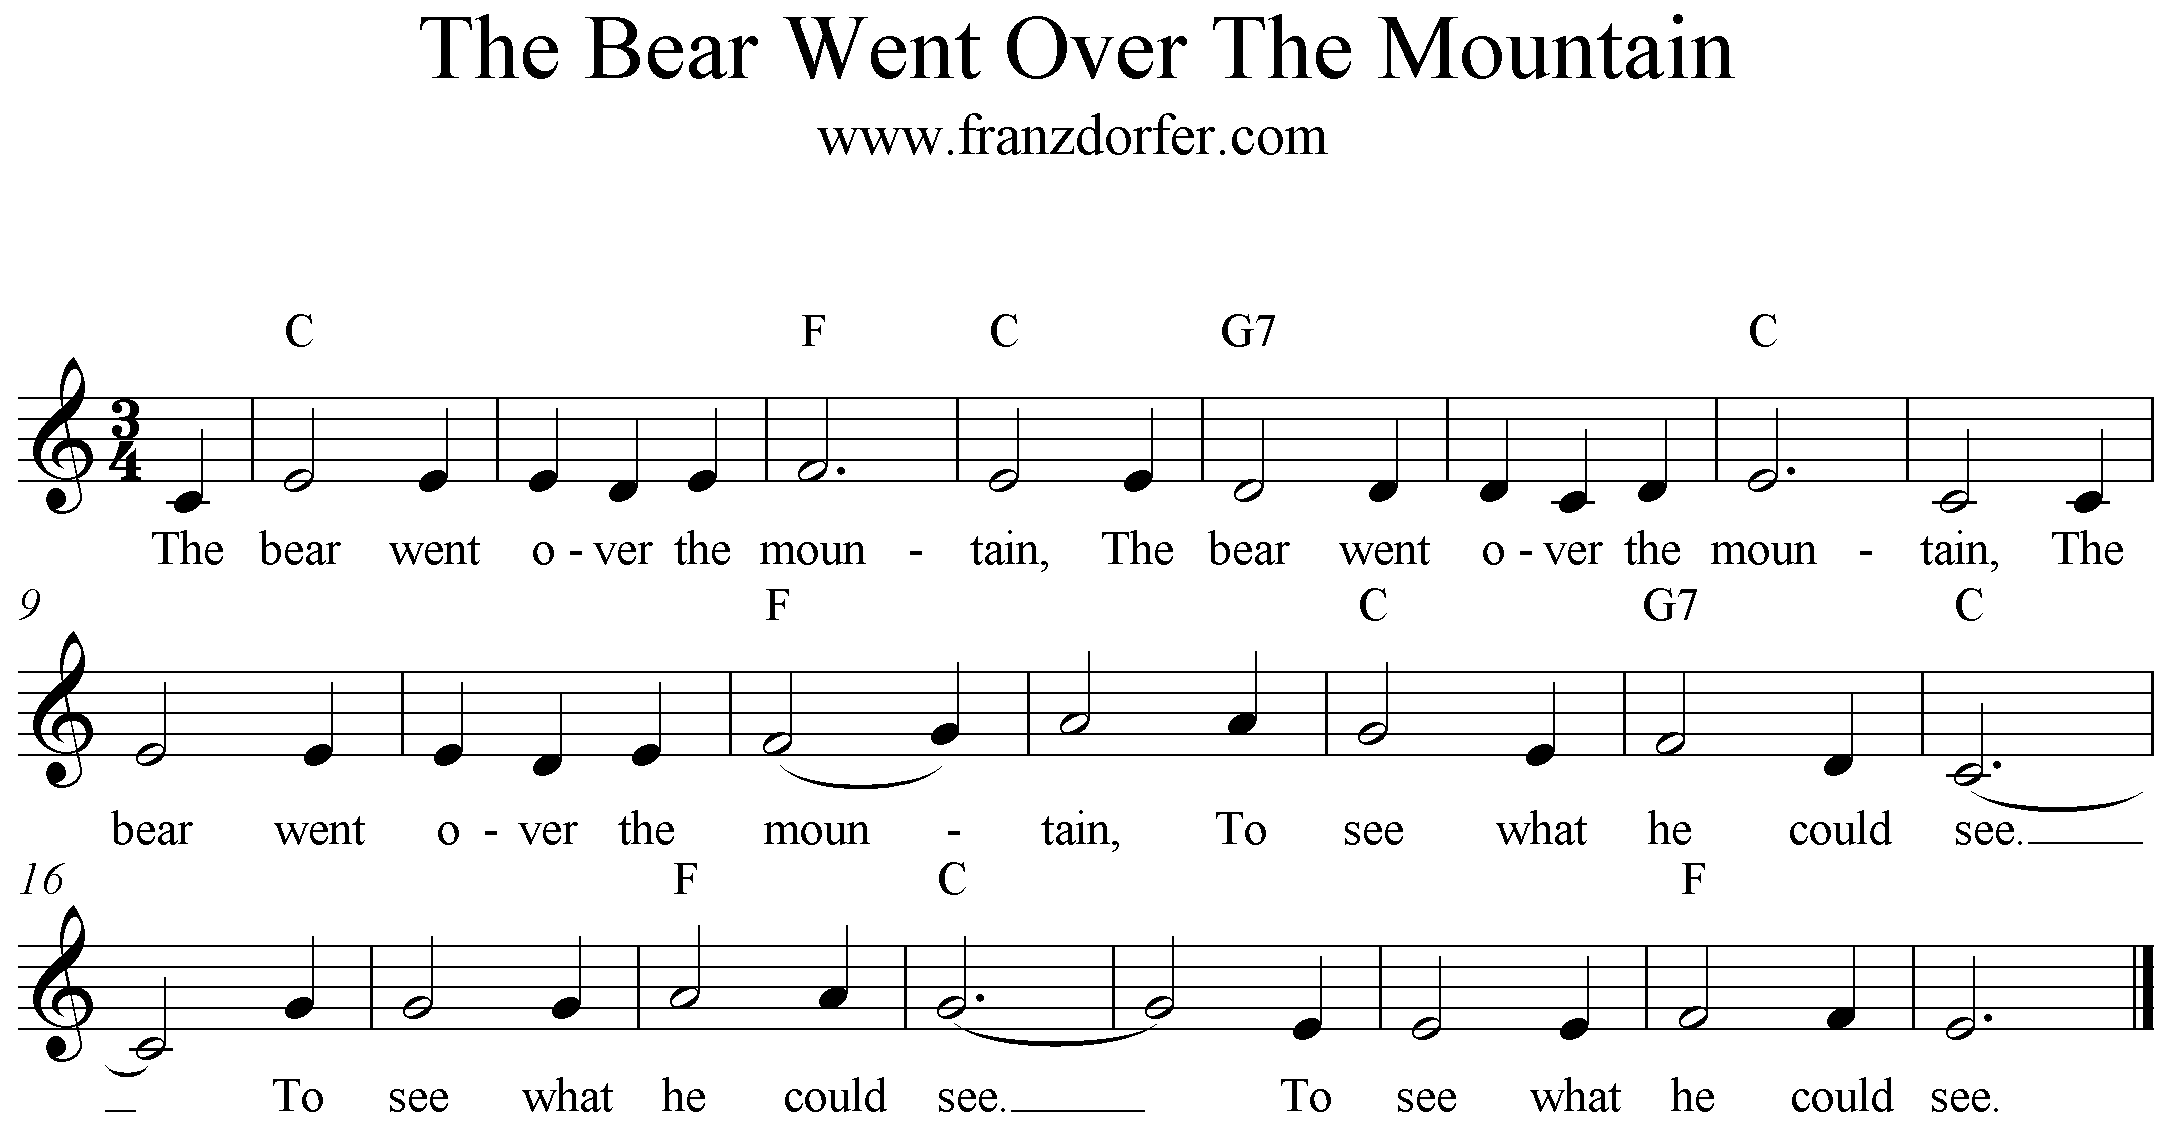 freesheet music The Bear went over the mountain